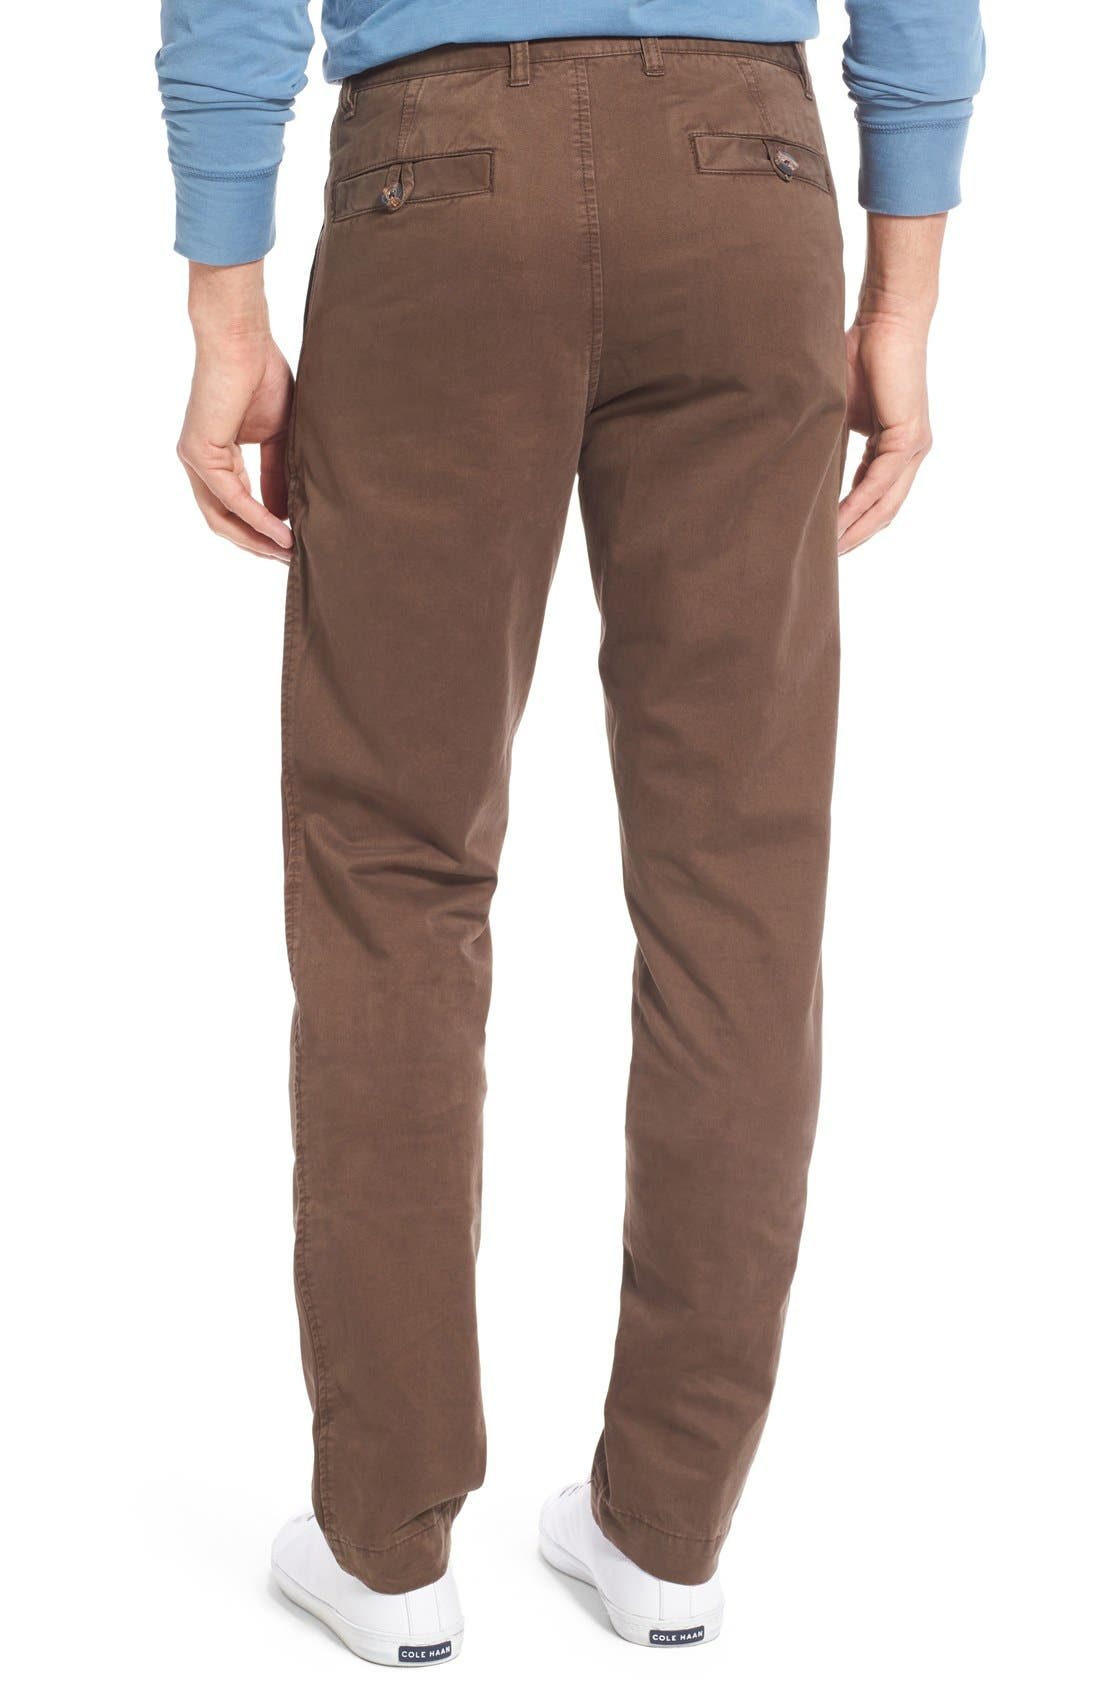 'Sahara' Trim Fit Vintage Washed Twill Chinos,                             Alternate thumbnail 16, color,